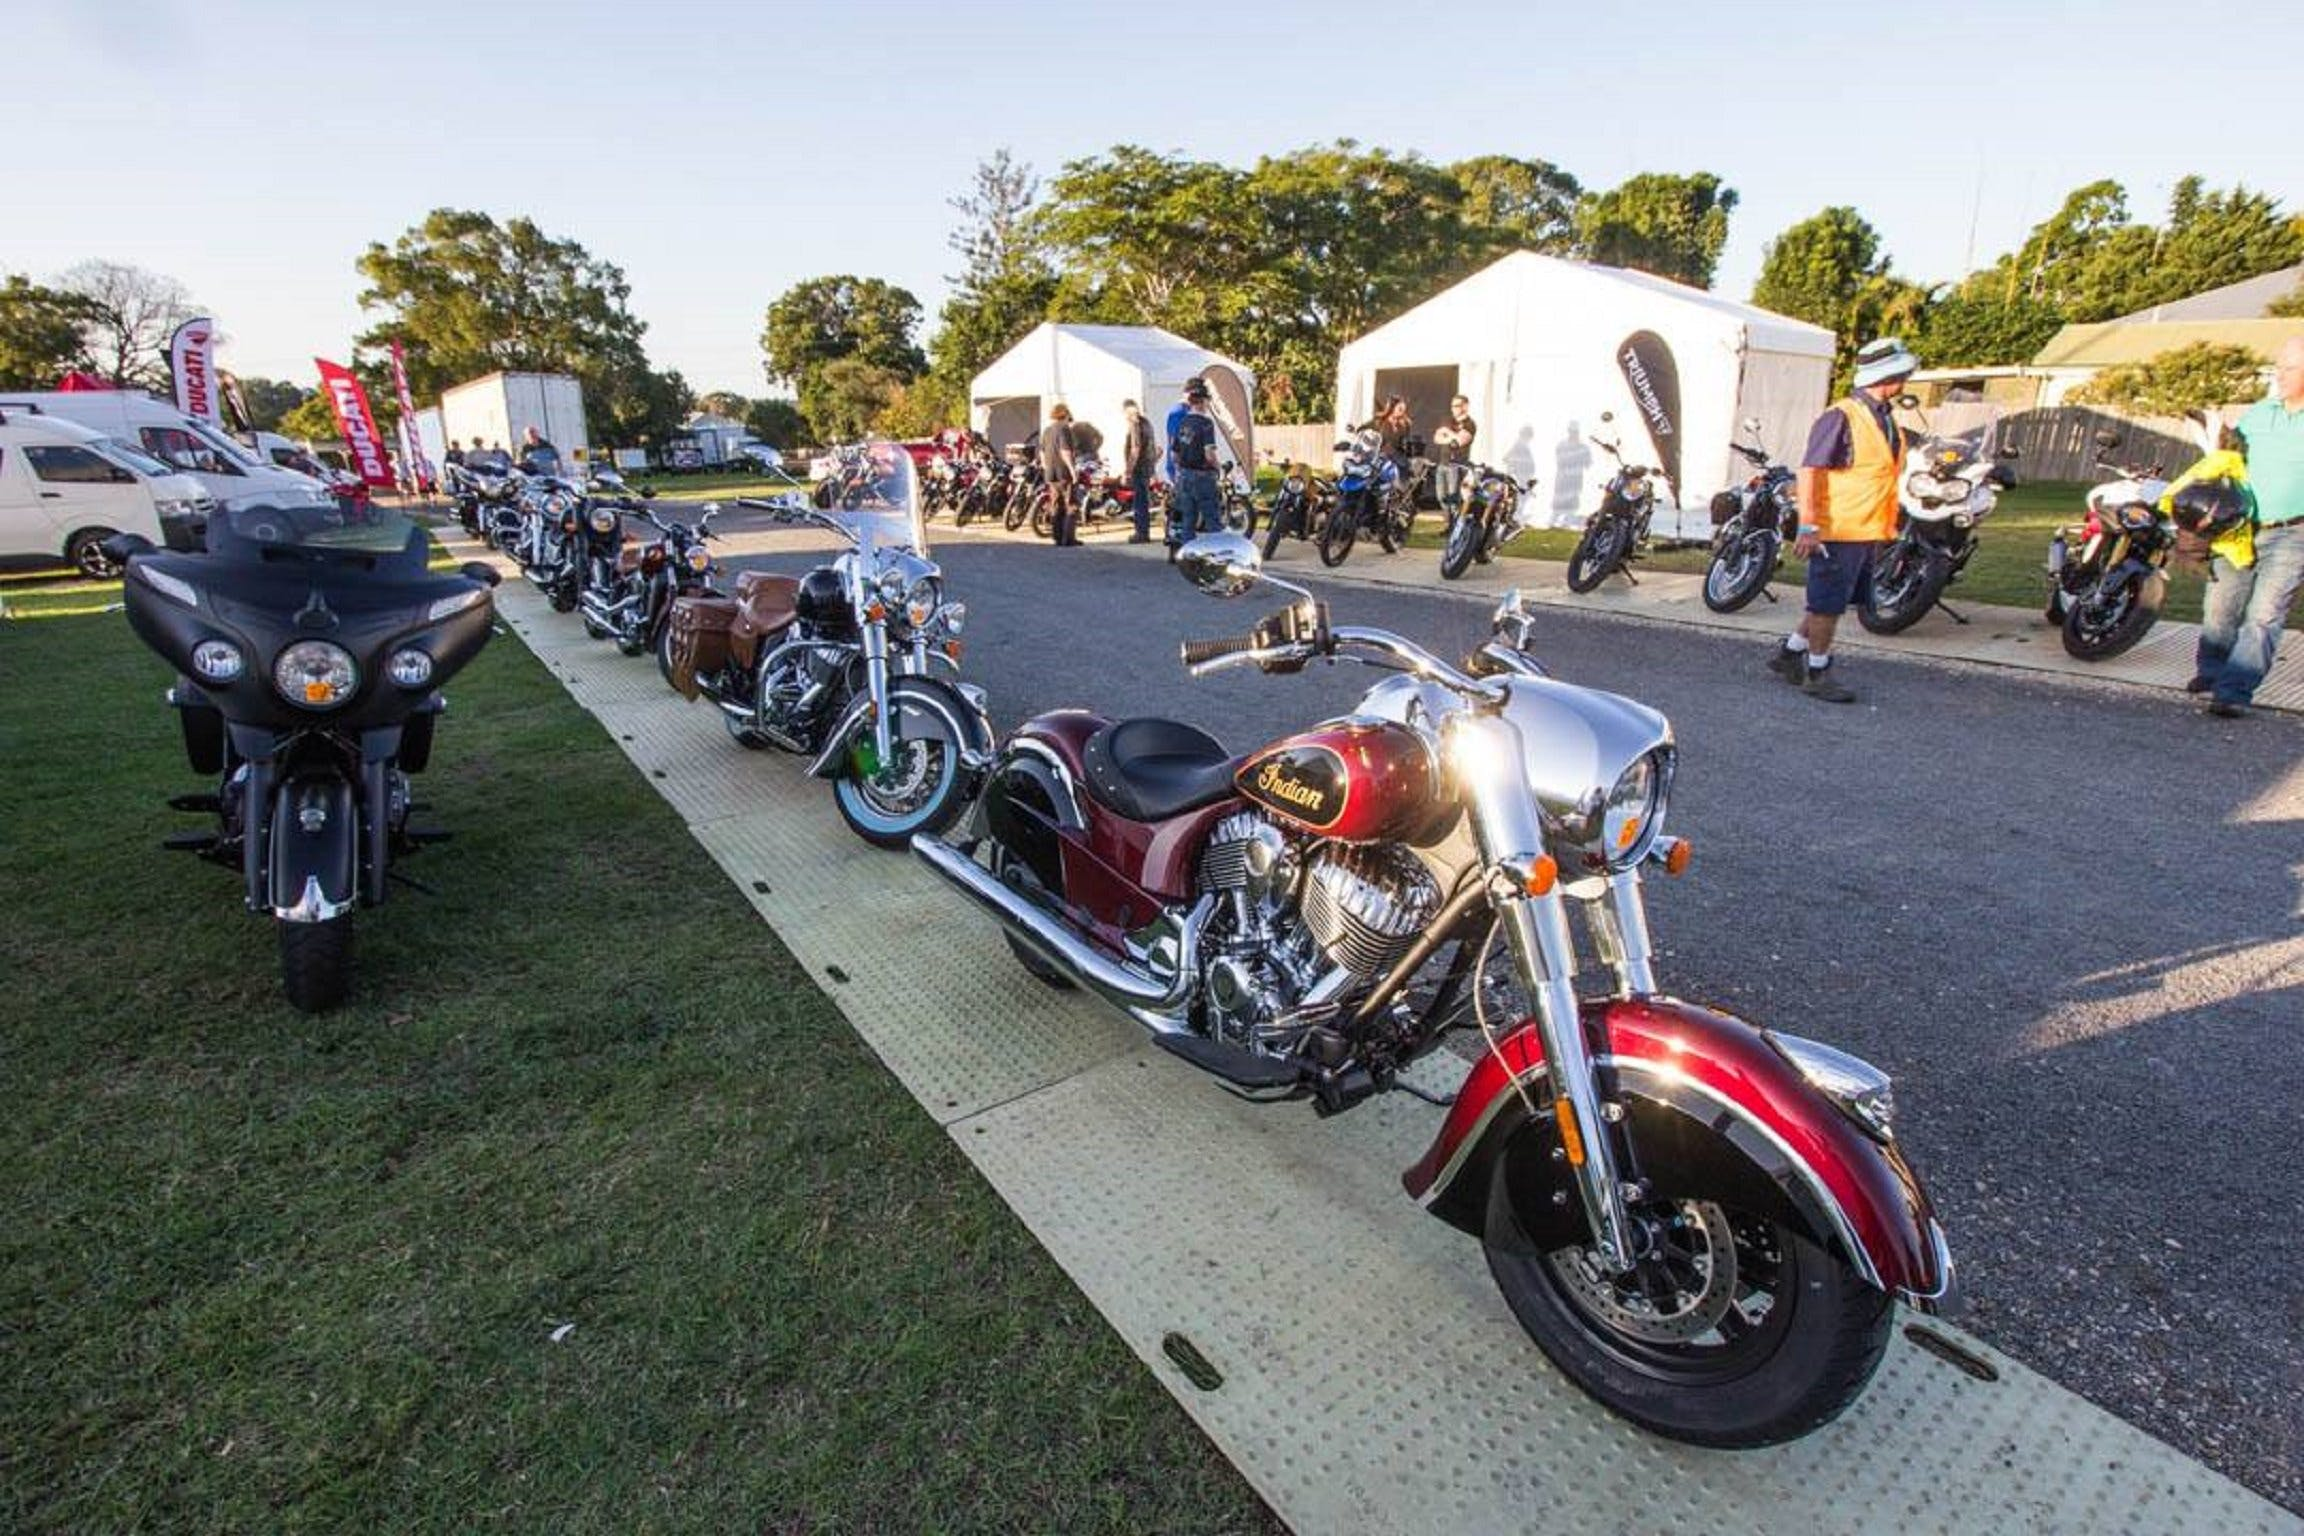 Wauchope MotoFest - Australia Accommodation